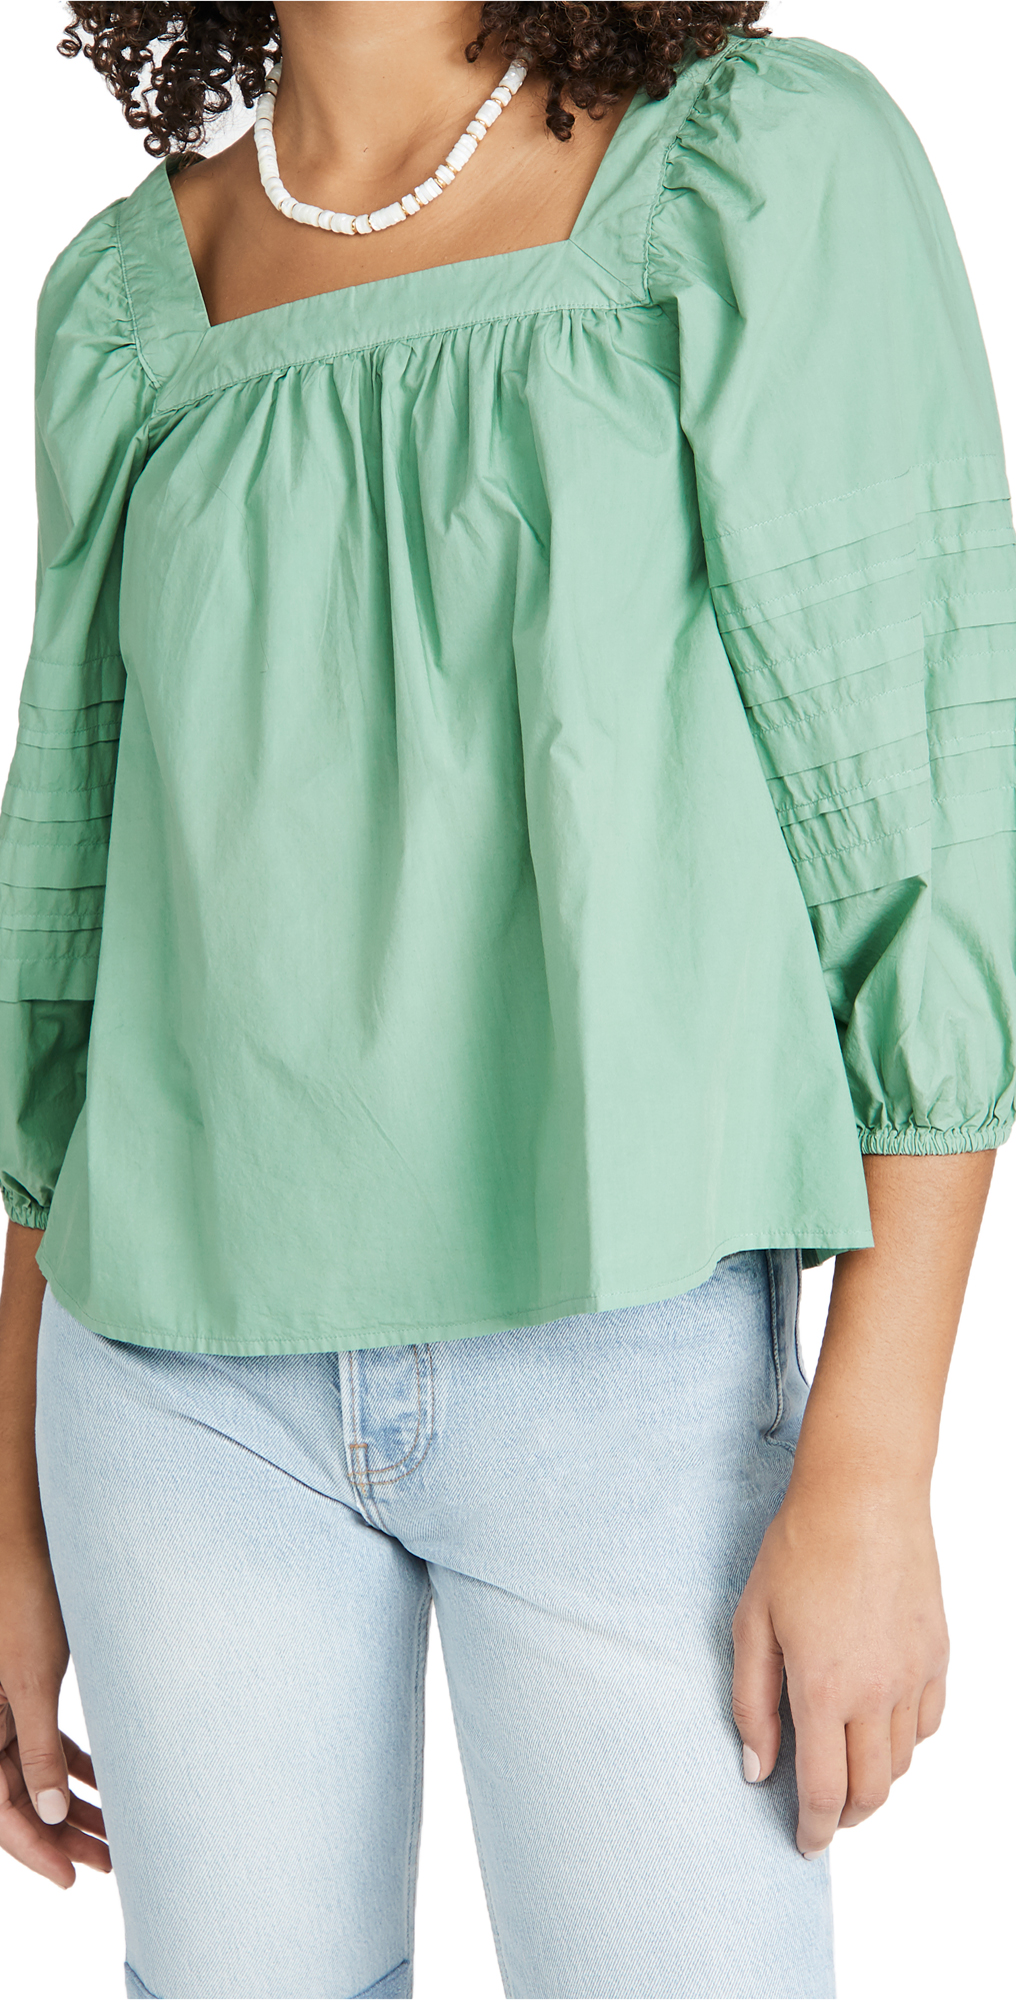 Madewell Clementine Top